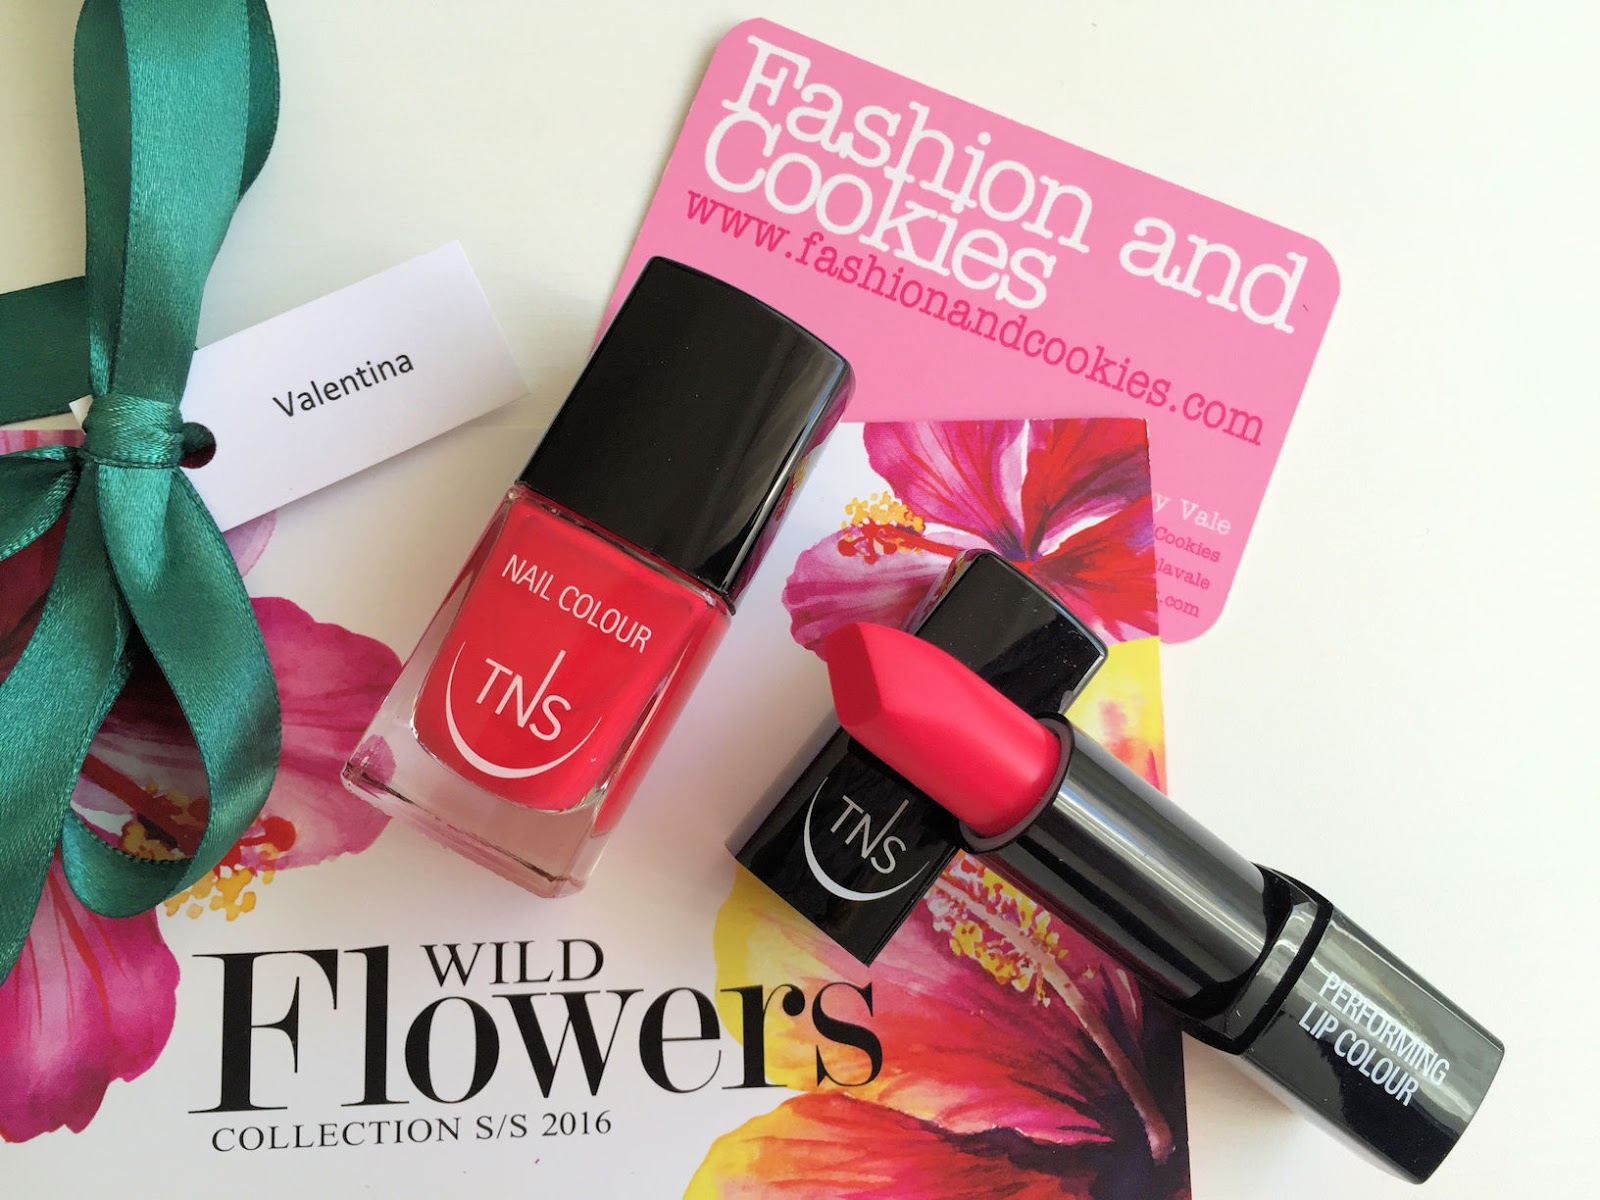 TNS Cosmetics Wild Flower lipstick and nail polish review on Fashion and Cookies beauty blog, beauty blogger